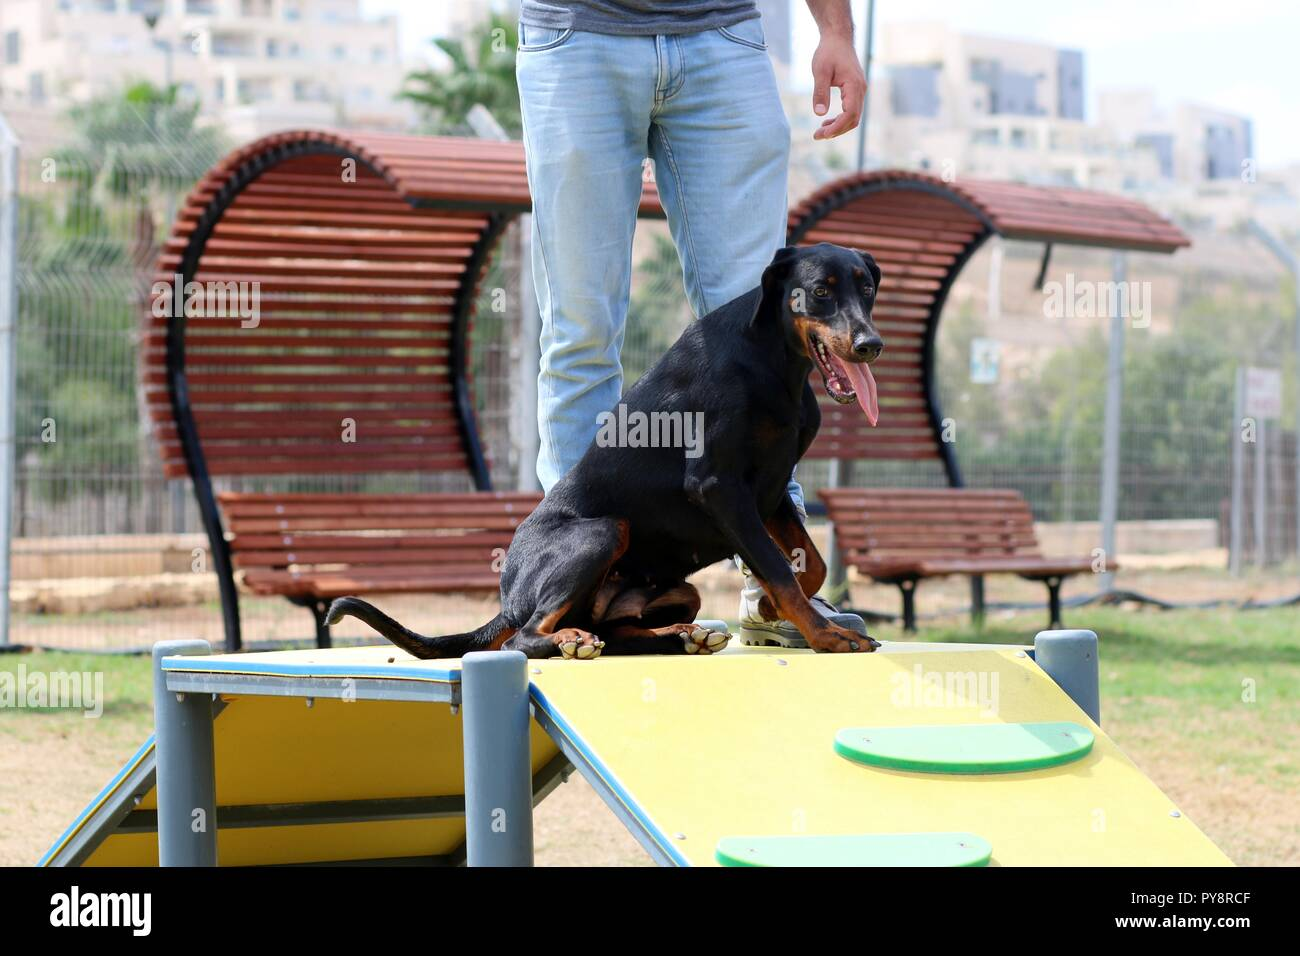 A dog plays in the facilities in the dog park - Stock Image